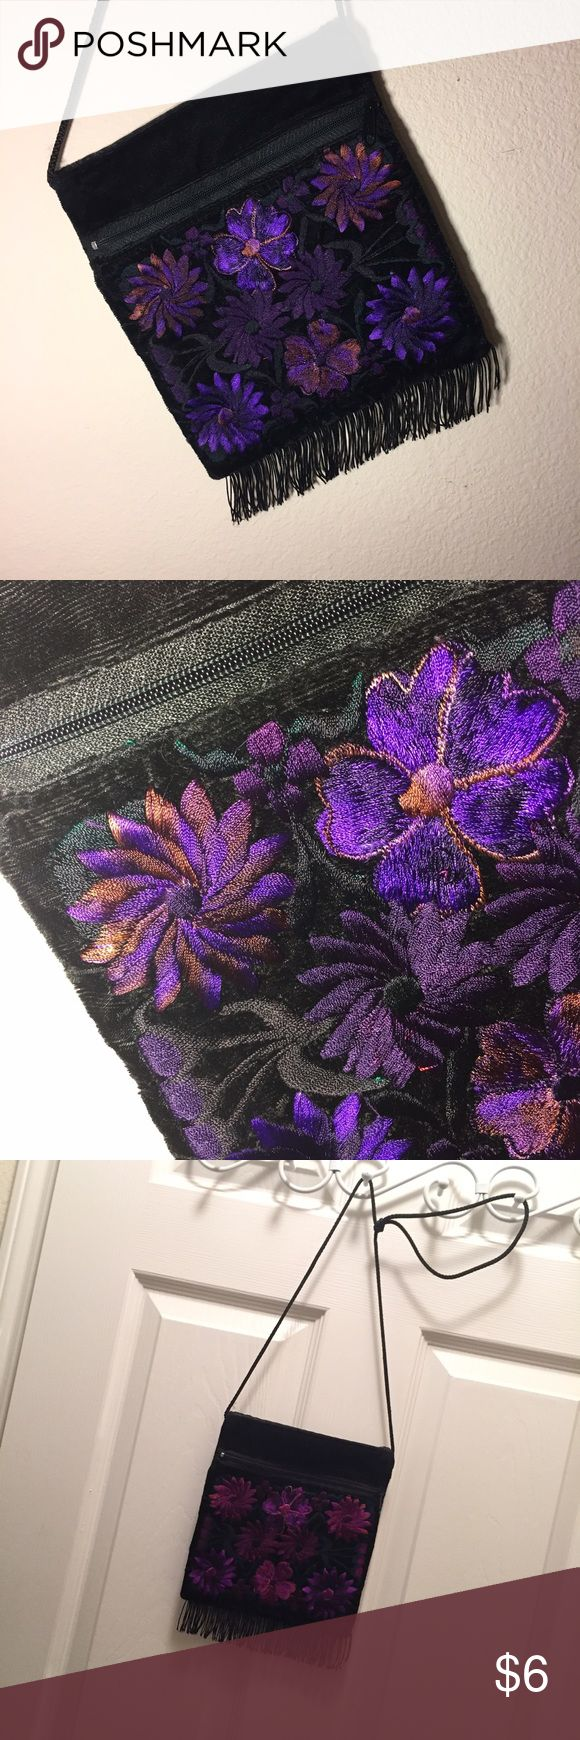 "Purple Cross-body ""passport"" fringe purse 7"" x 8"". Two compartments to hide your ID, money, a compact and a couple lipsticks. Beautiful embroidered purple design on front only (plain black on back, so you can flip it around for another iutfit). This is the ultimate essentials side-body bag. Super long string shoulder strap, can be worn across the body, or straight on. Good condition, couple fringe threads missing on wearers right side. Only used a couple times. Bags Mini Bags"